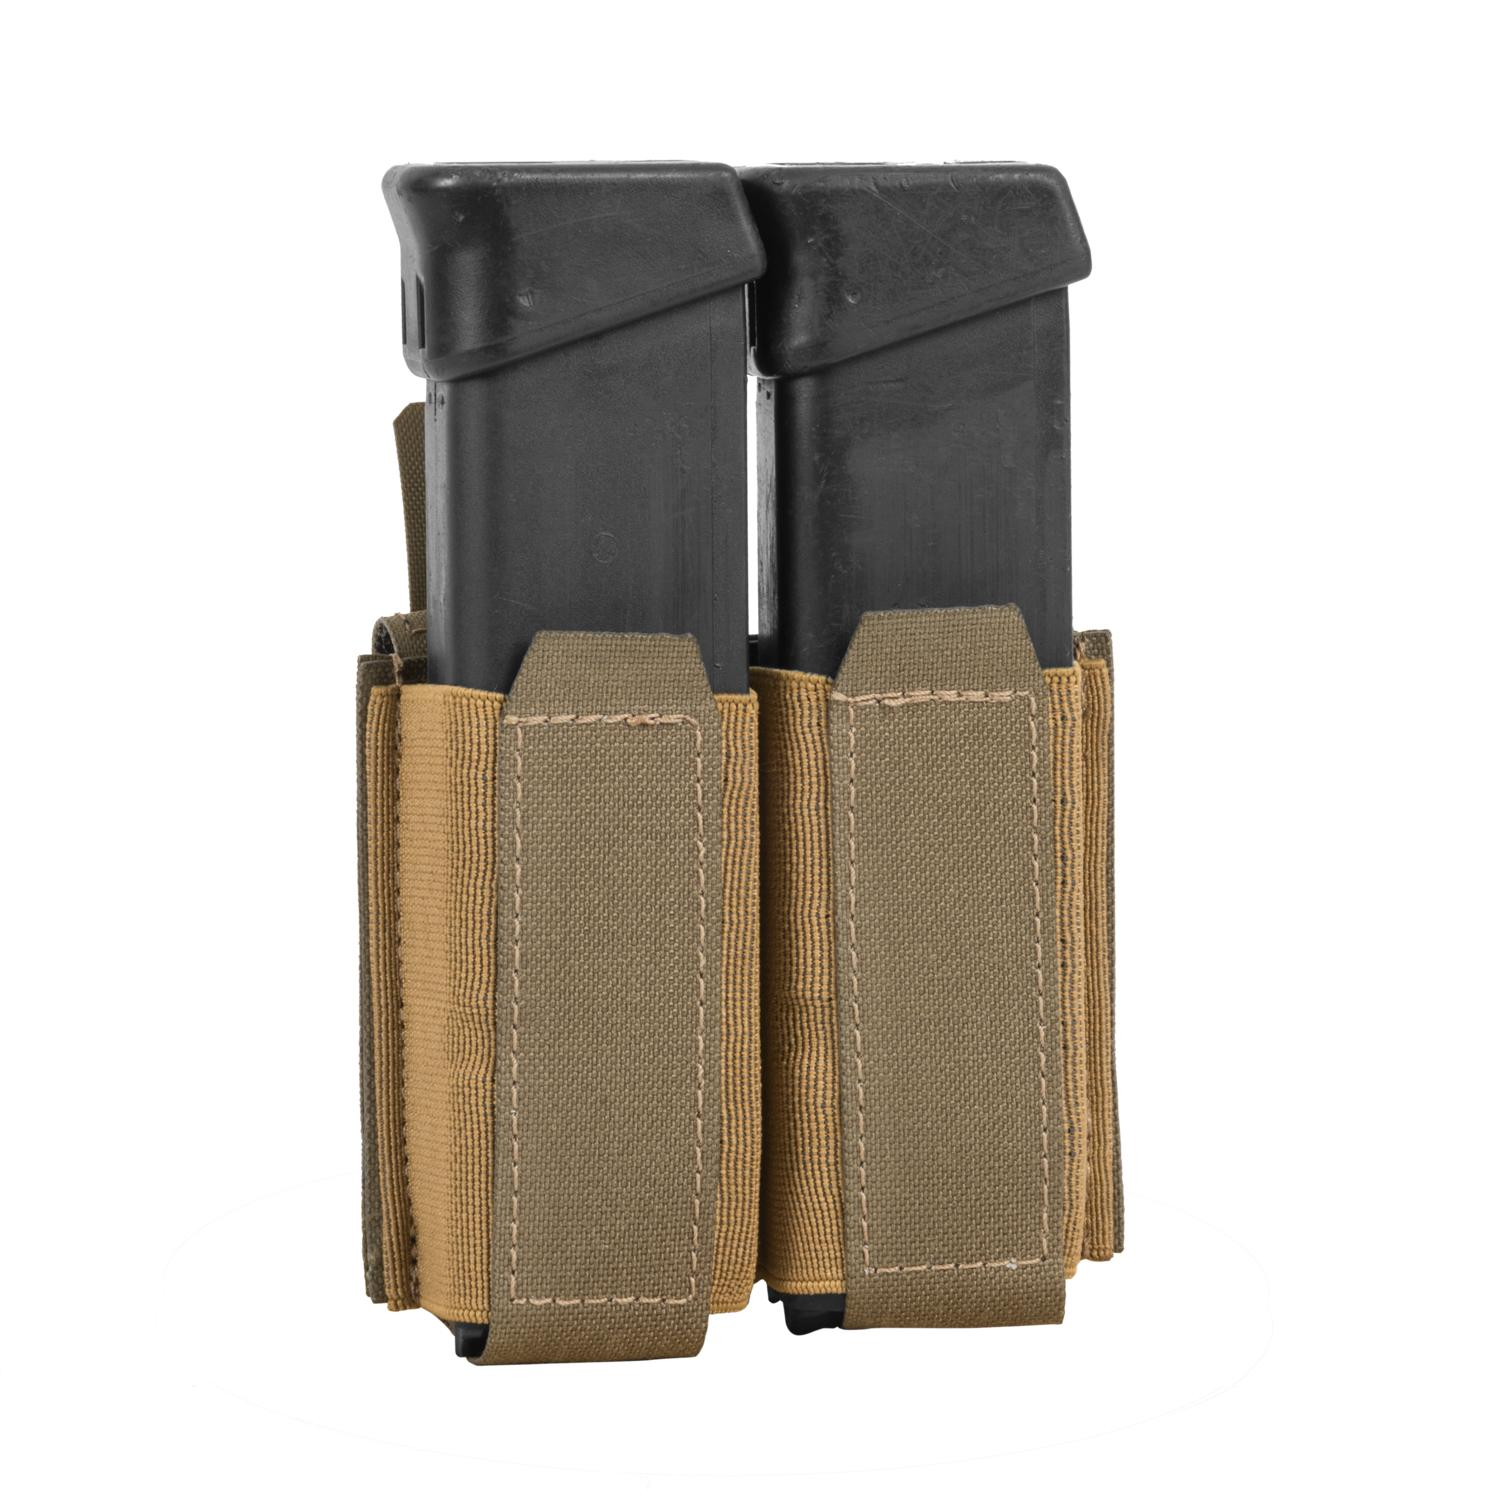 LOW PROFILE PISTOL MAGAZINE POUCH®